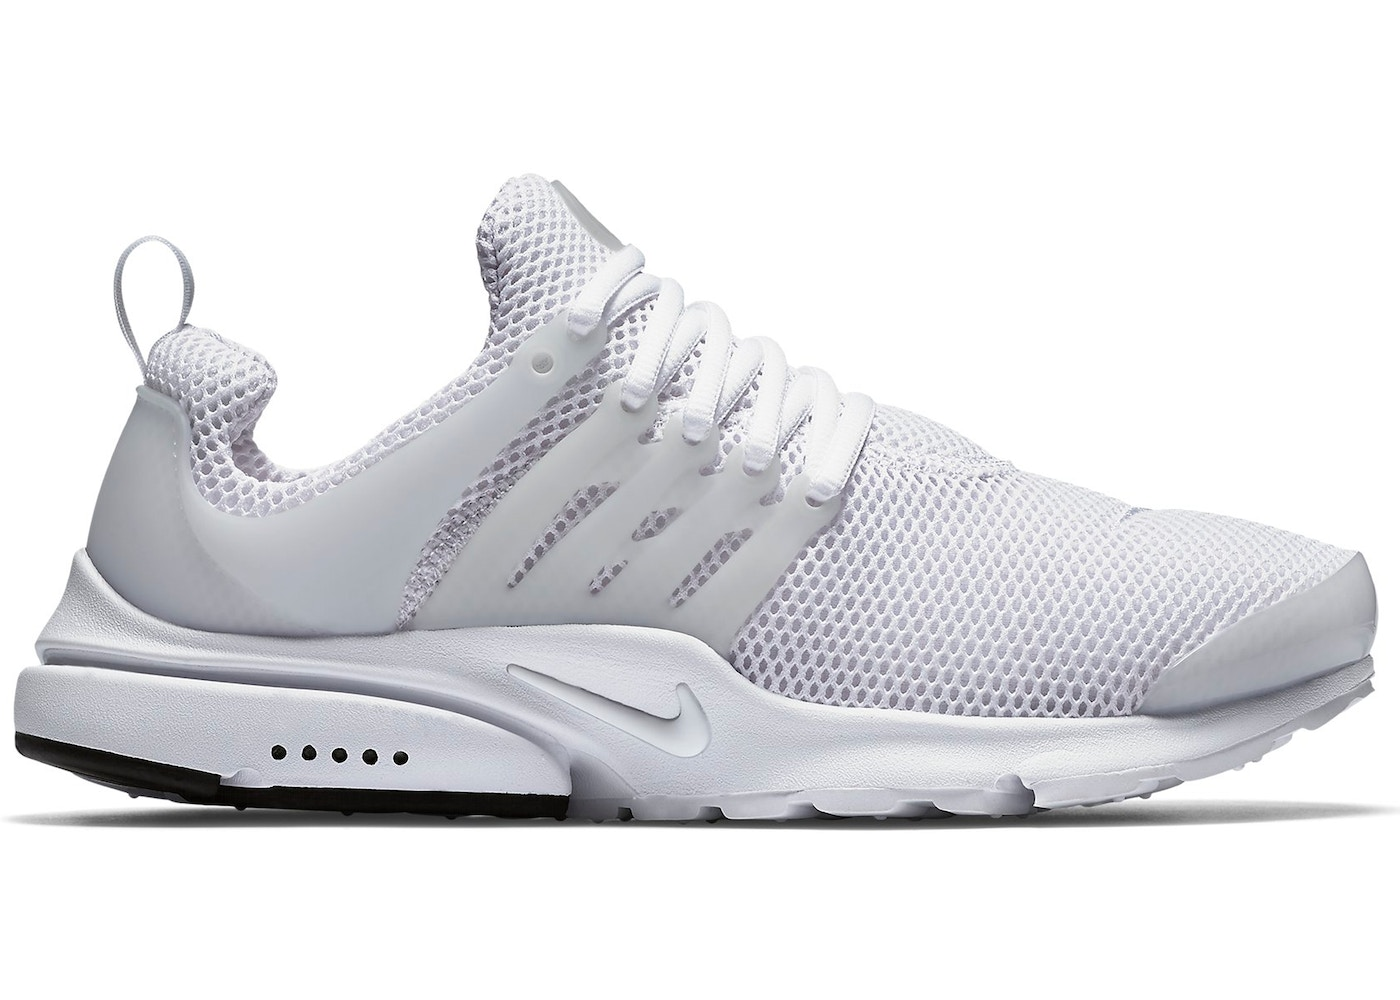 pretty nice 875f2 c1f54 Air Presto White Mesh